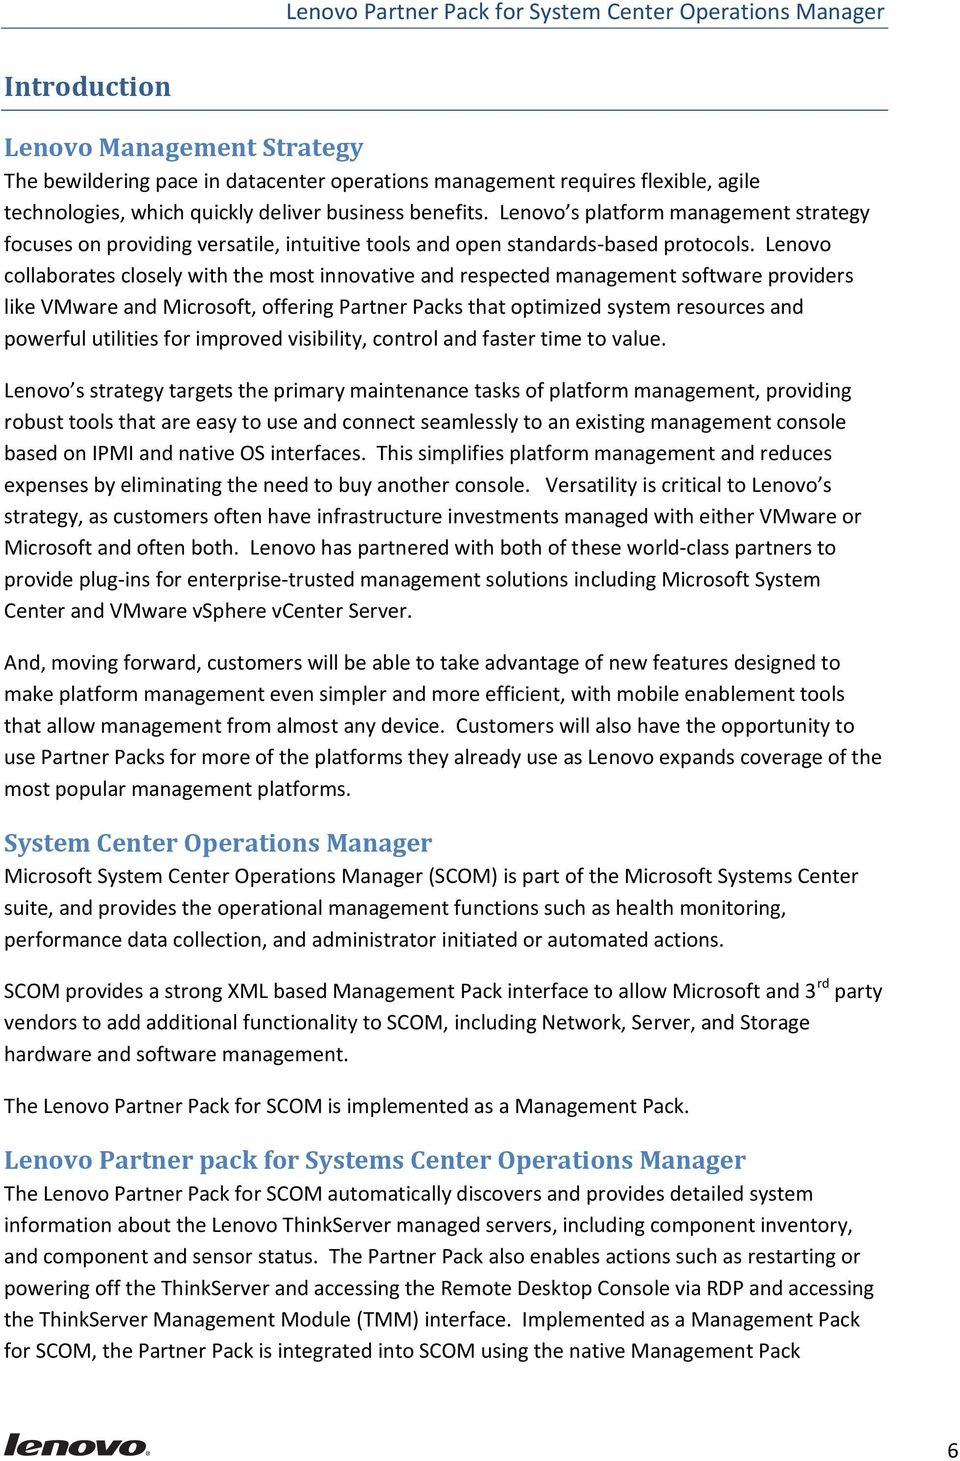 Lenovo collaborates closely with the most innovative and respected management software providers like VMware and Microsoft, offering Partner Packs that optimized system resources and powerful